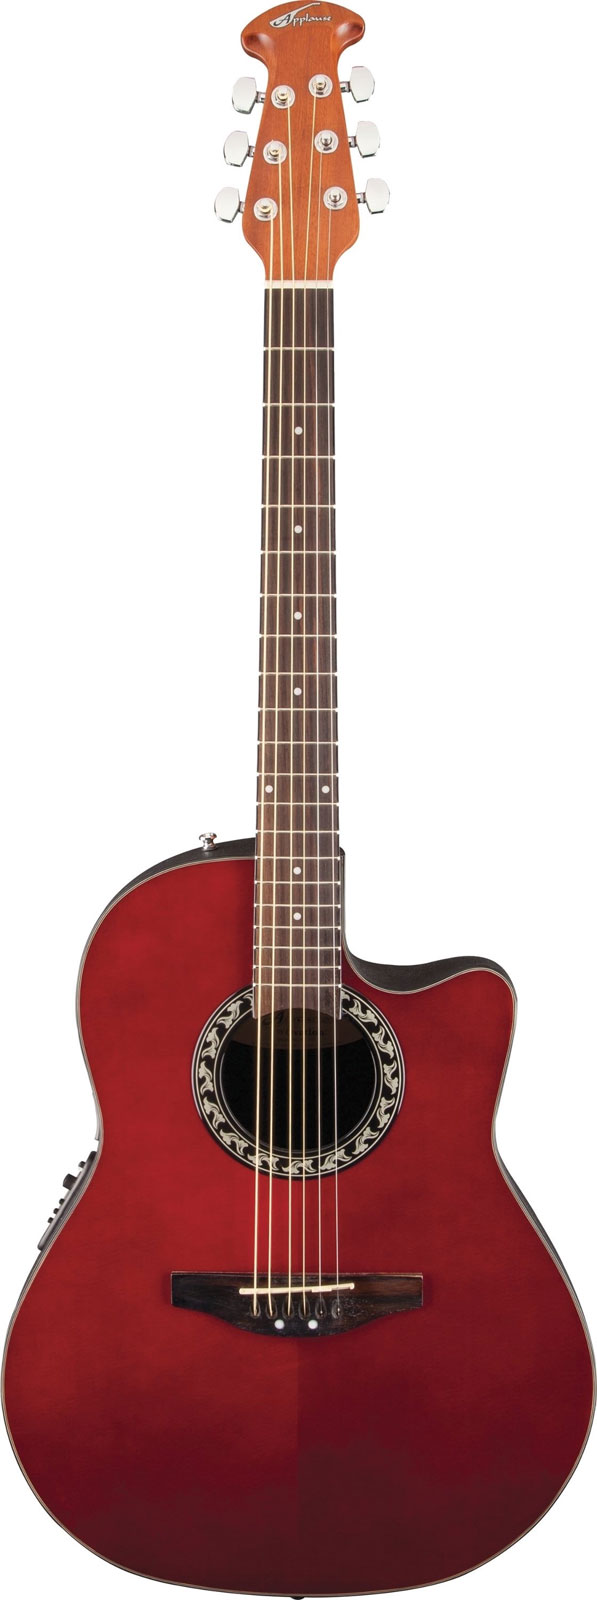 OVATION APPLAUSE BALLADEER AB24RR RUBY RED